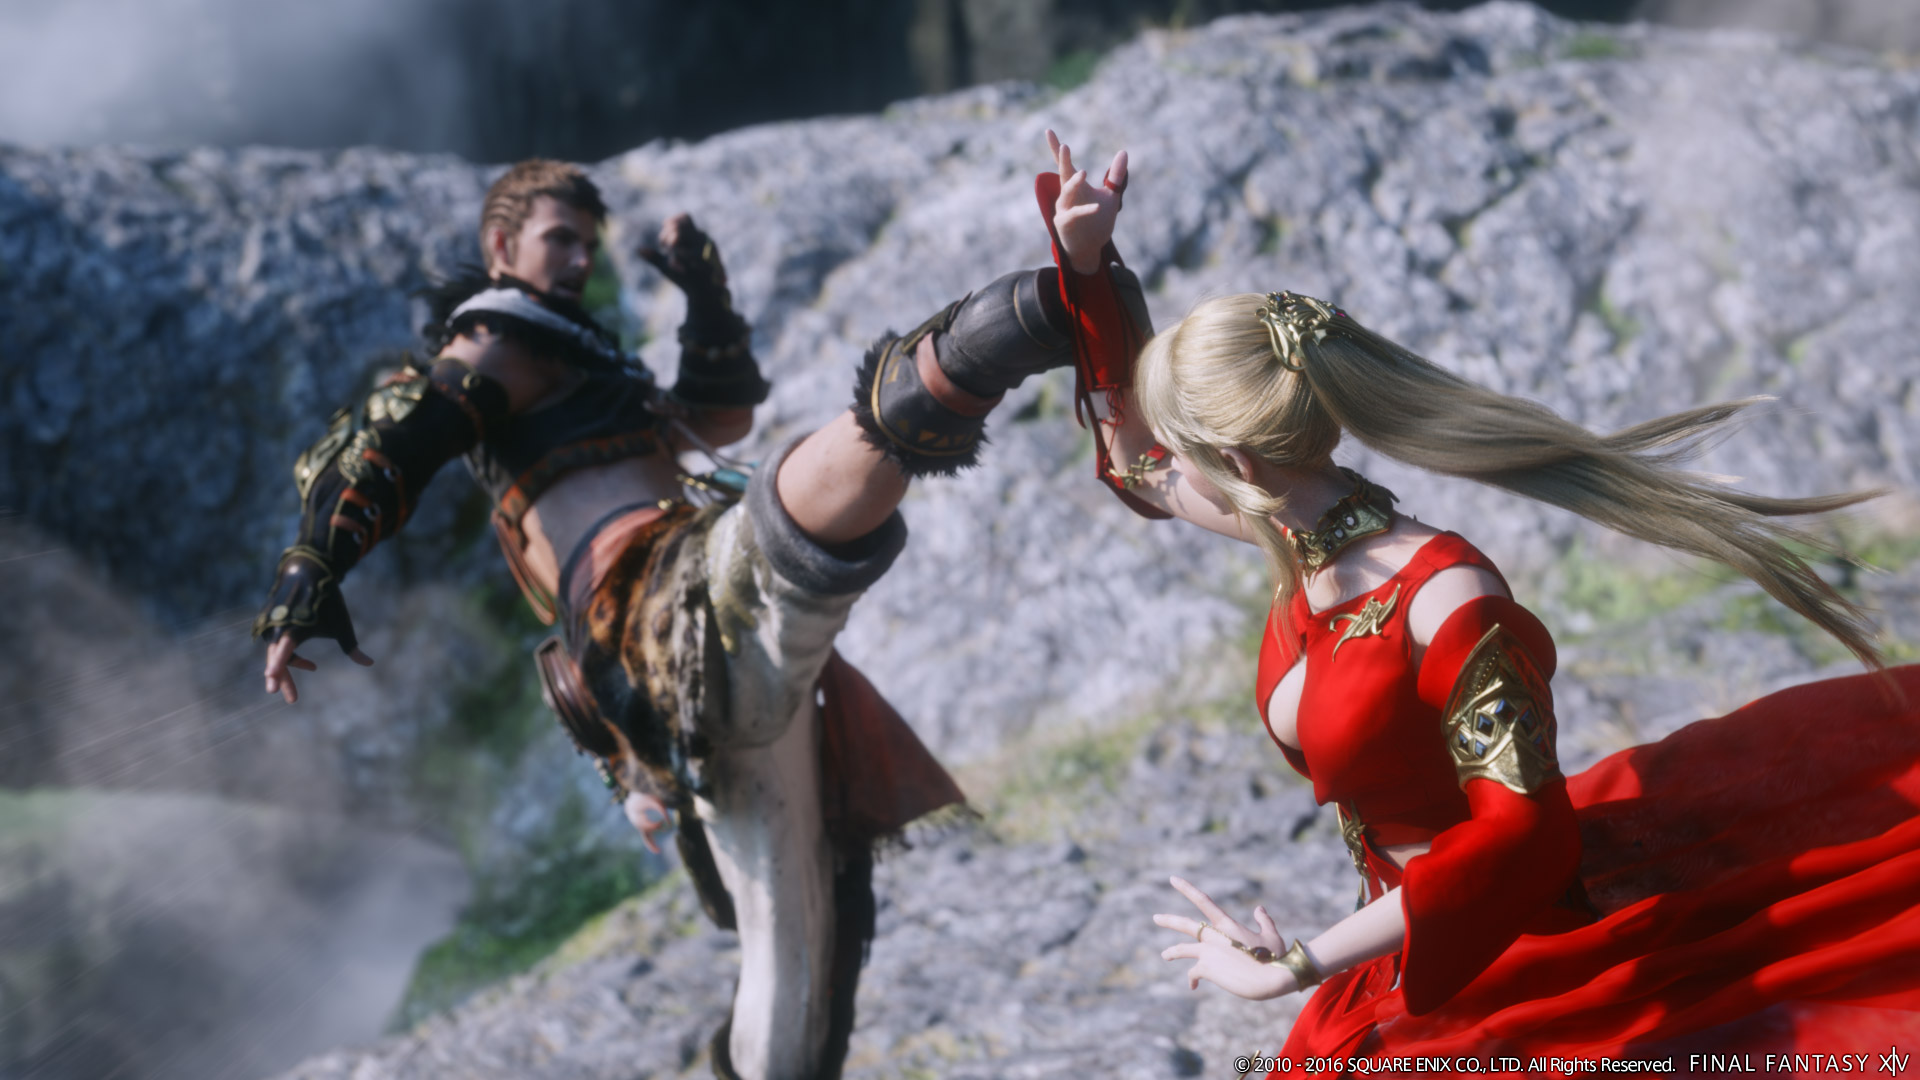 Final Fantasy XIV's Naoki Yoshida Discusses New Jobs, End